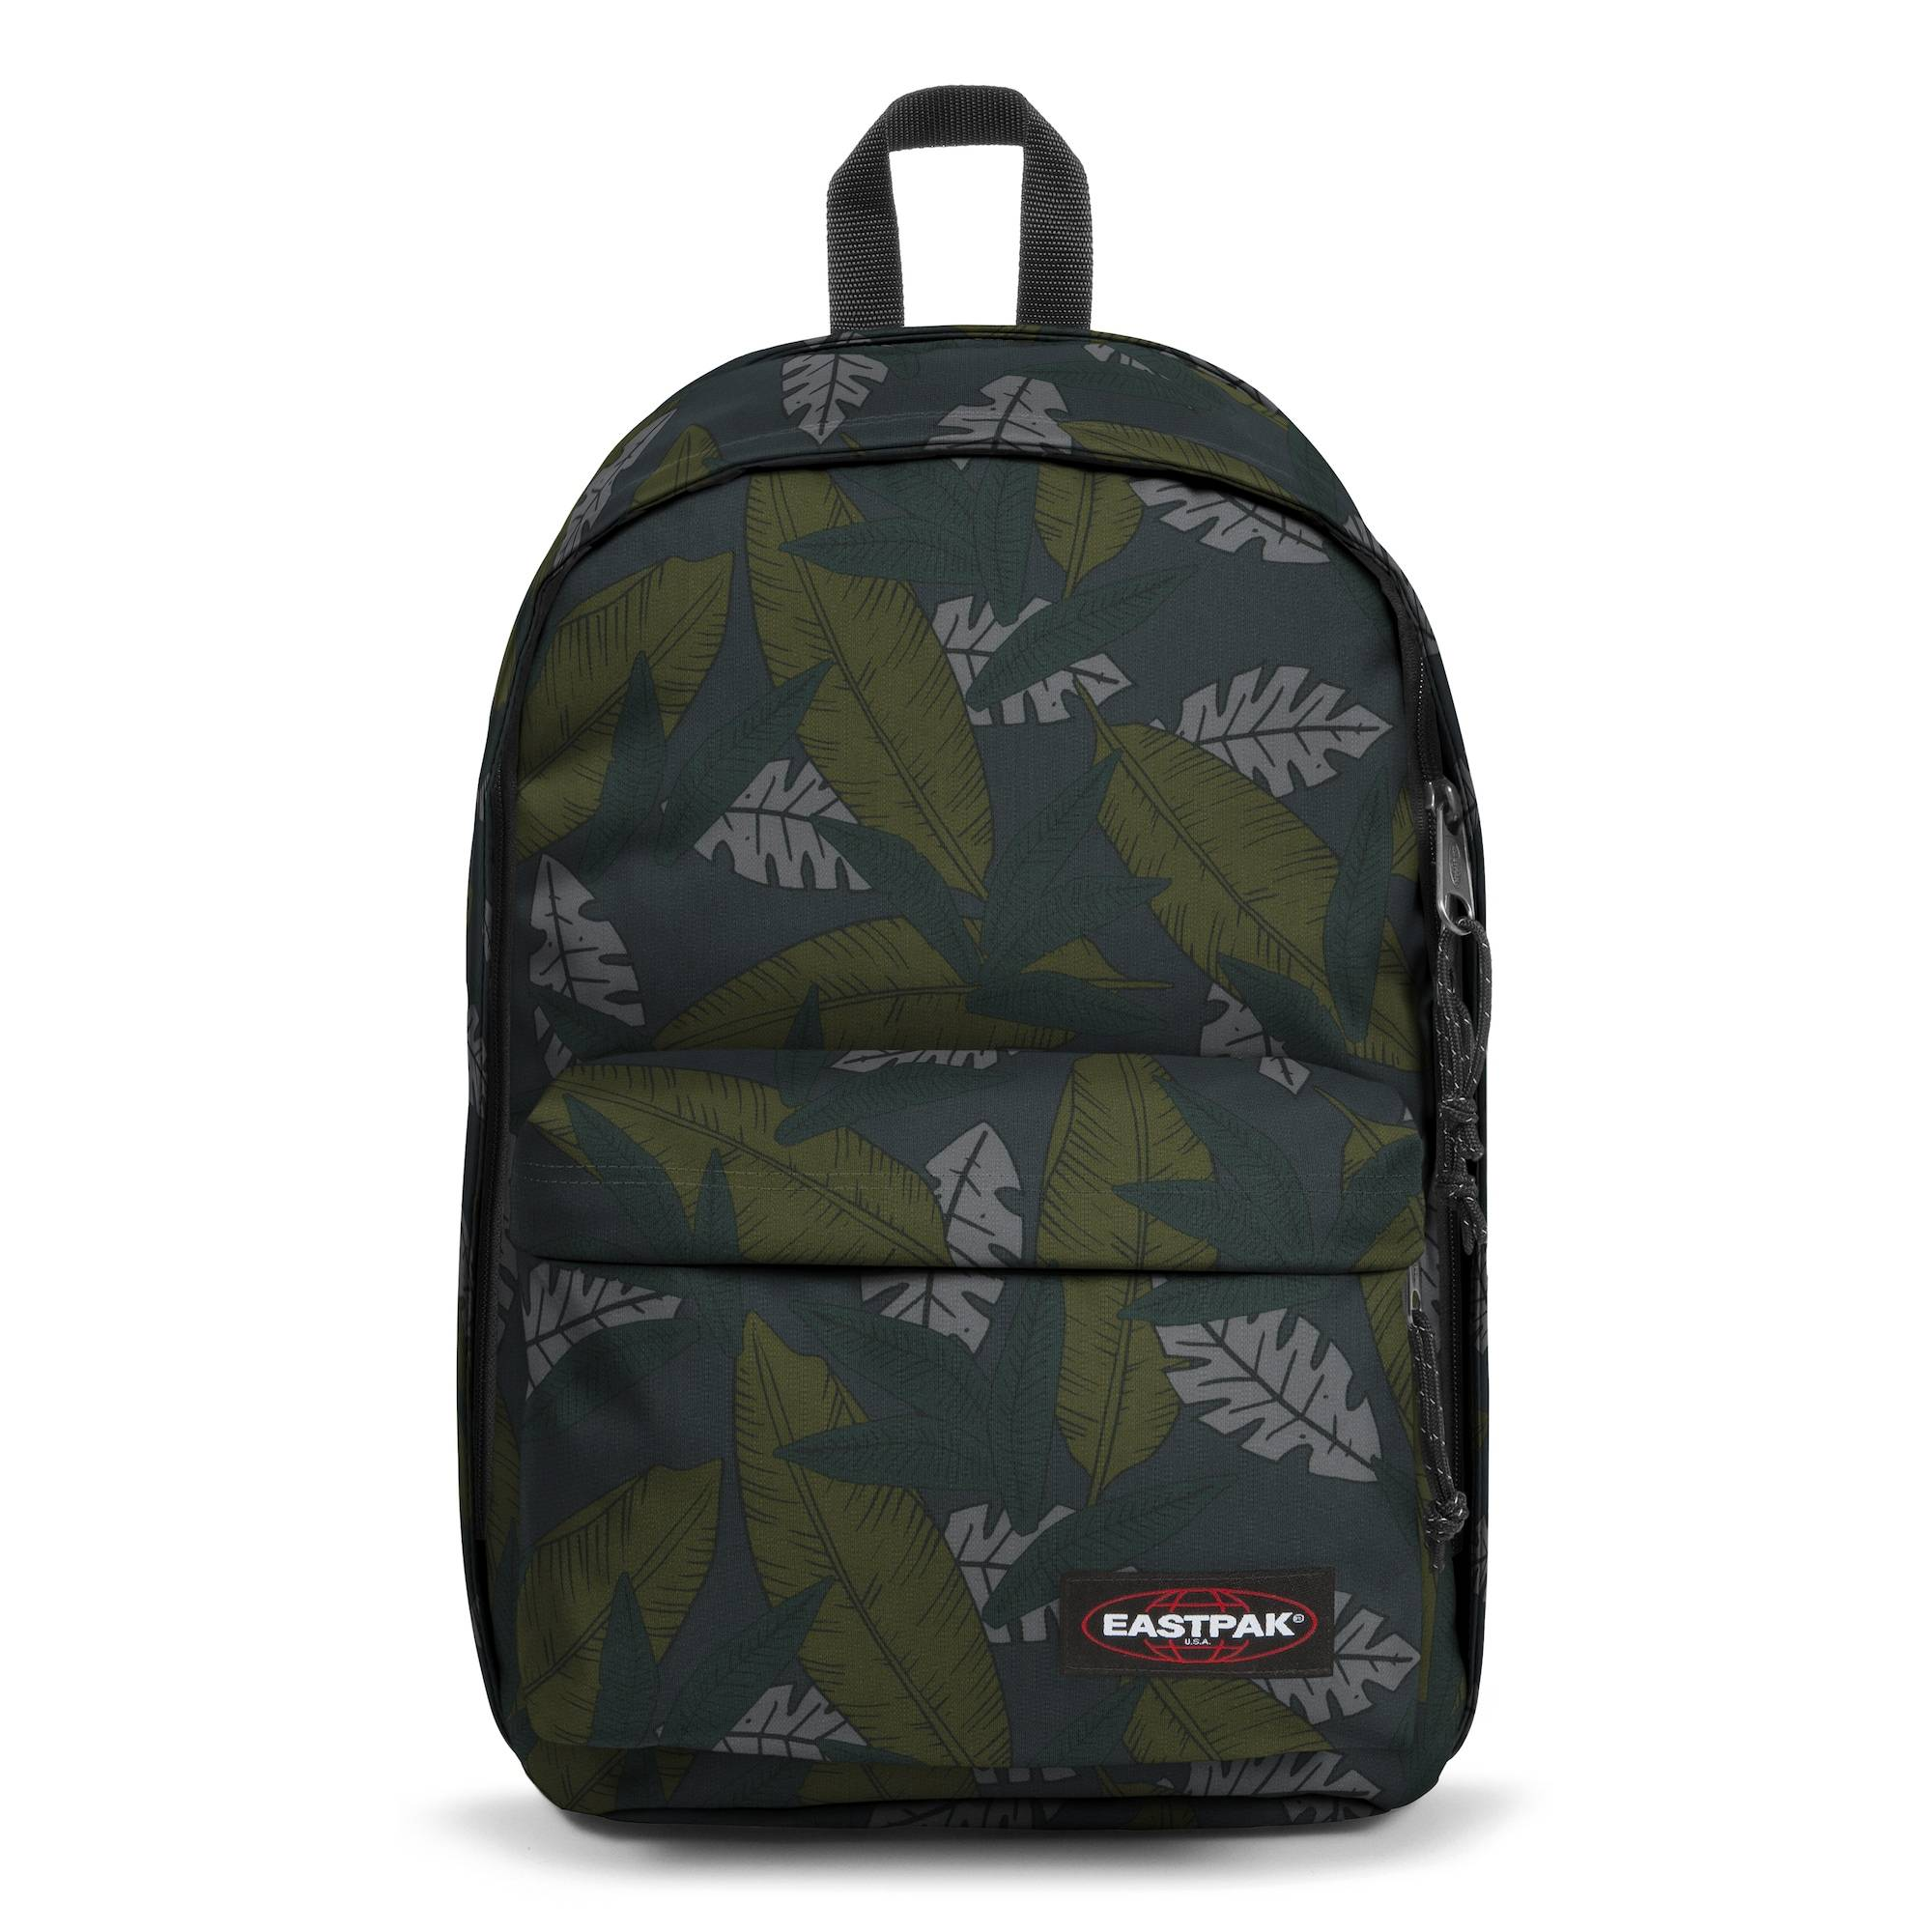 EASTPAK Sac à dos 'Back to Work'  - Vert - Taille: One Size - male